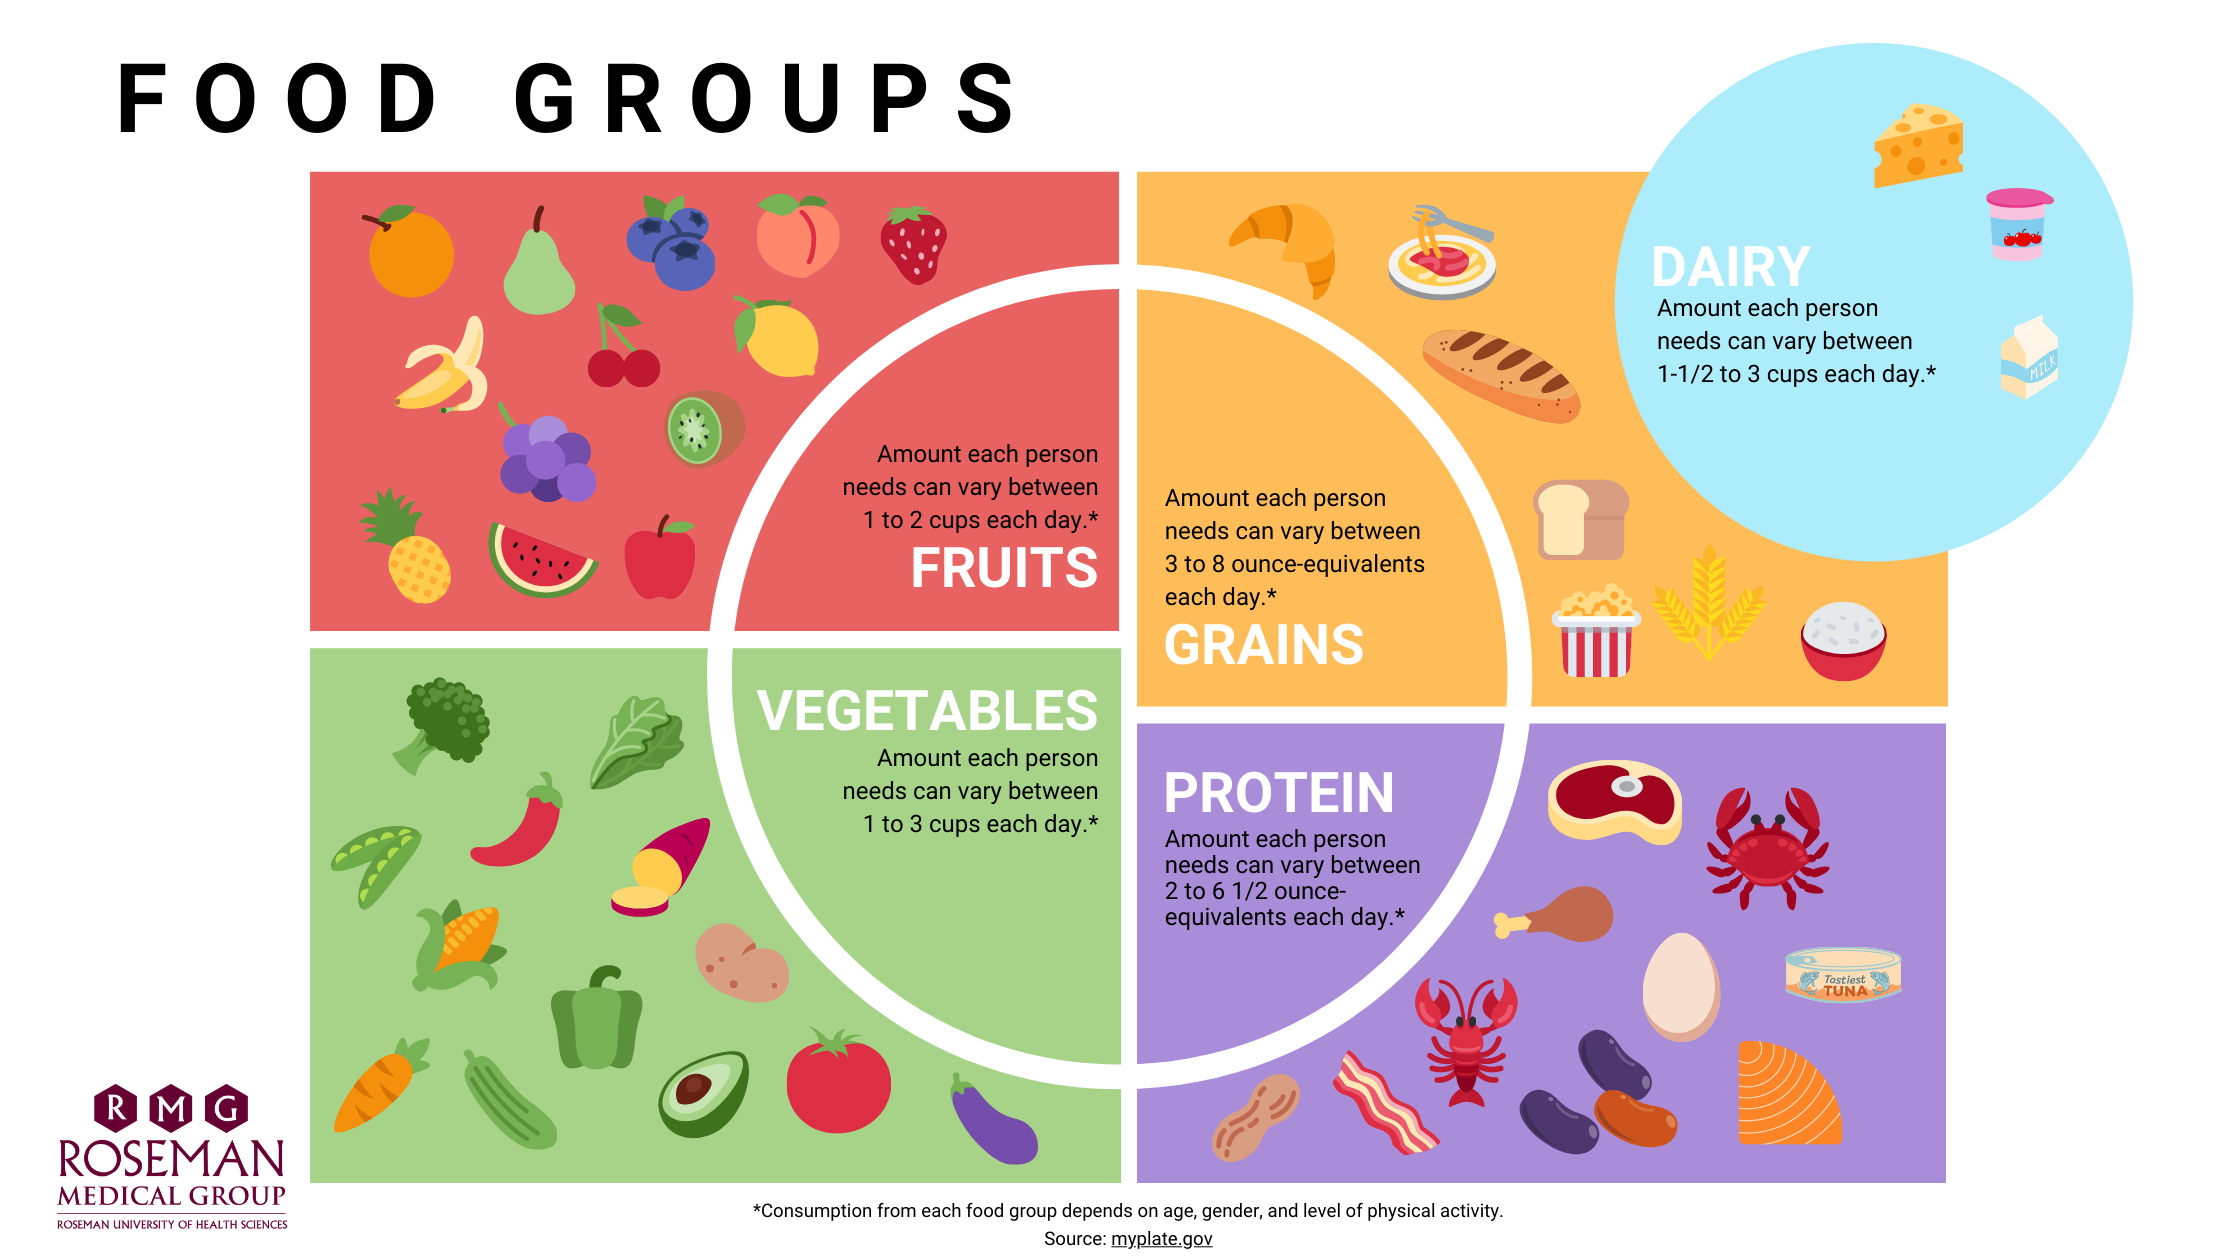 Food Groups. Fruits - Amount each person needs can vary between 1 to 2 cups each day. Grains - Amount each person needs can vary between 3 to 8 ounce-equivalents each day. Dairy - Amount each person needs can vary between 1-1/2 to 3 cups each day. Vegetables - Amount each person needs can vary between 1 to 3 cups each day. Protein - Amount each person needs can vary between 2 to 6-1/2 ounce-equivalents each day. Consumption from each food group depends on age, gender, and level of physical activity. Source: myplate.gov